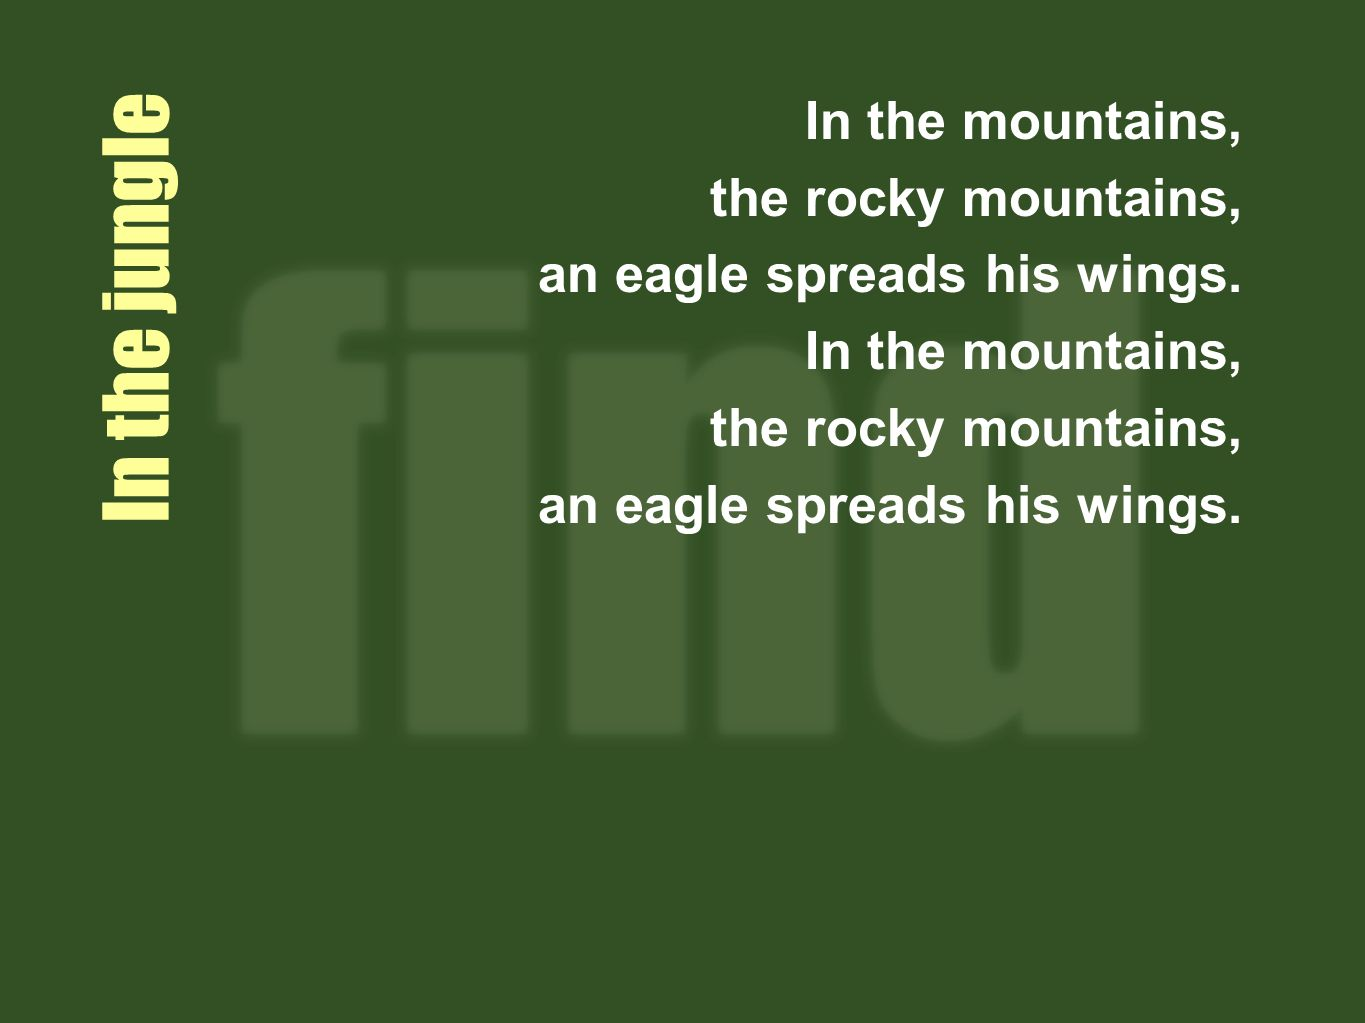 In the jungle In the mountains, the rocky mountains, an eagle spreads his wings.